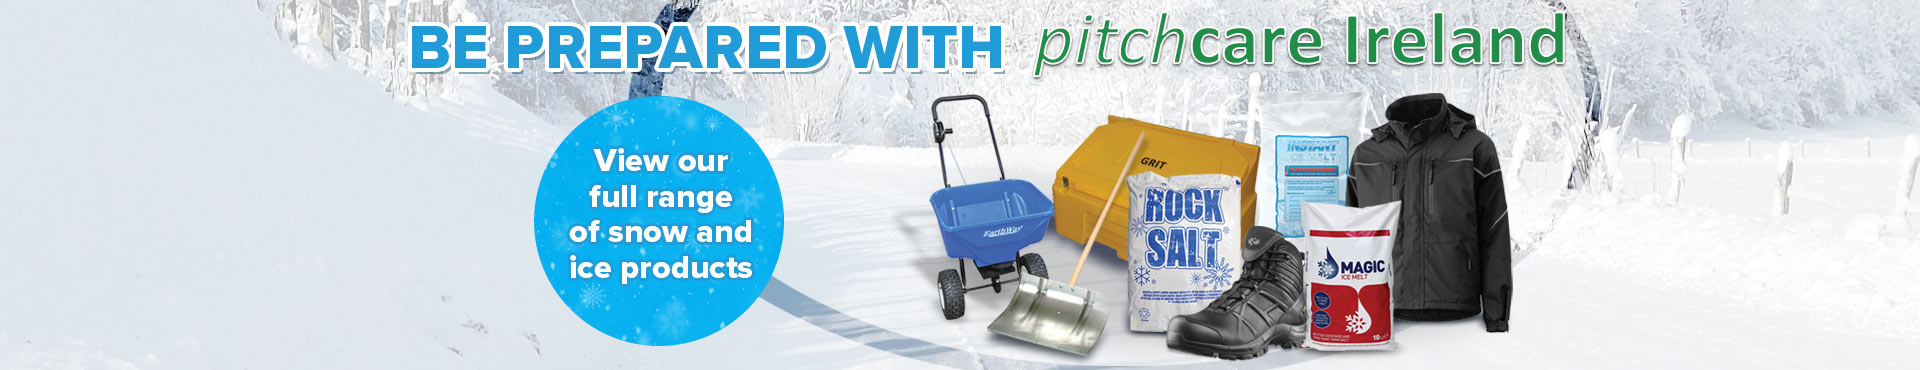 Ice and Snow Removal Products from Pitchcare Ireland